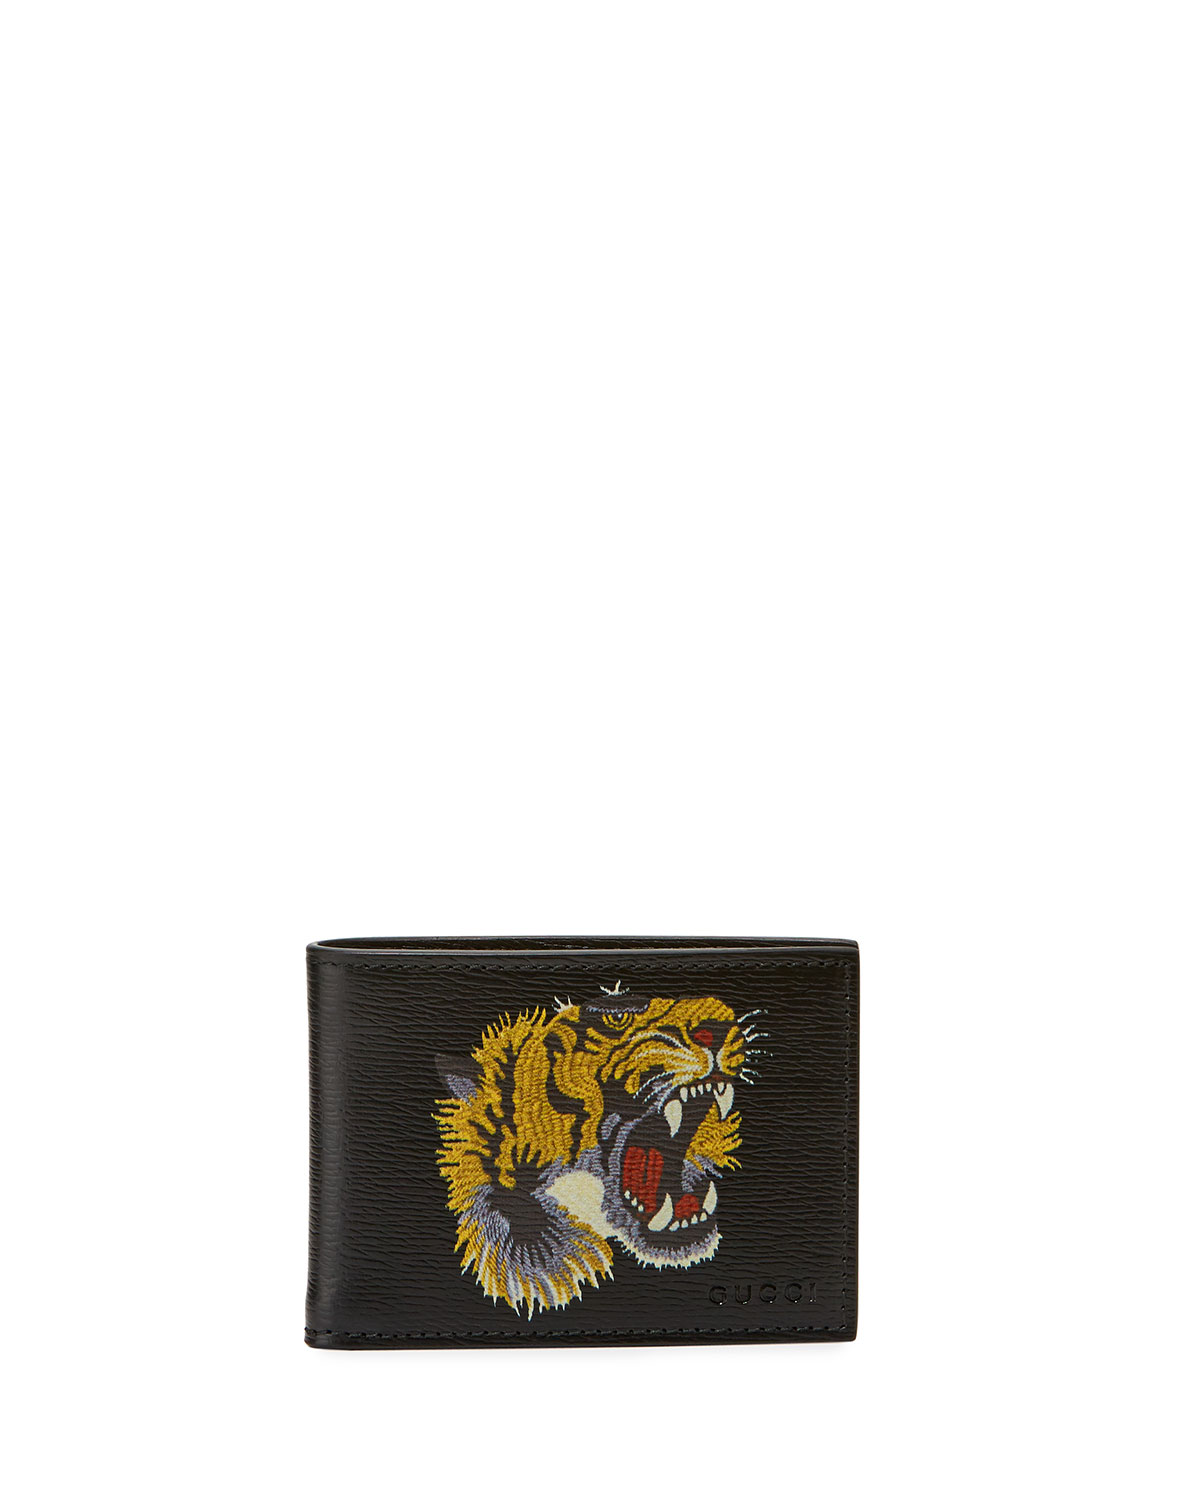 Gucci Bestiary Embroidered Tiger Face Leather Wallet b6bee69468c